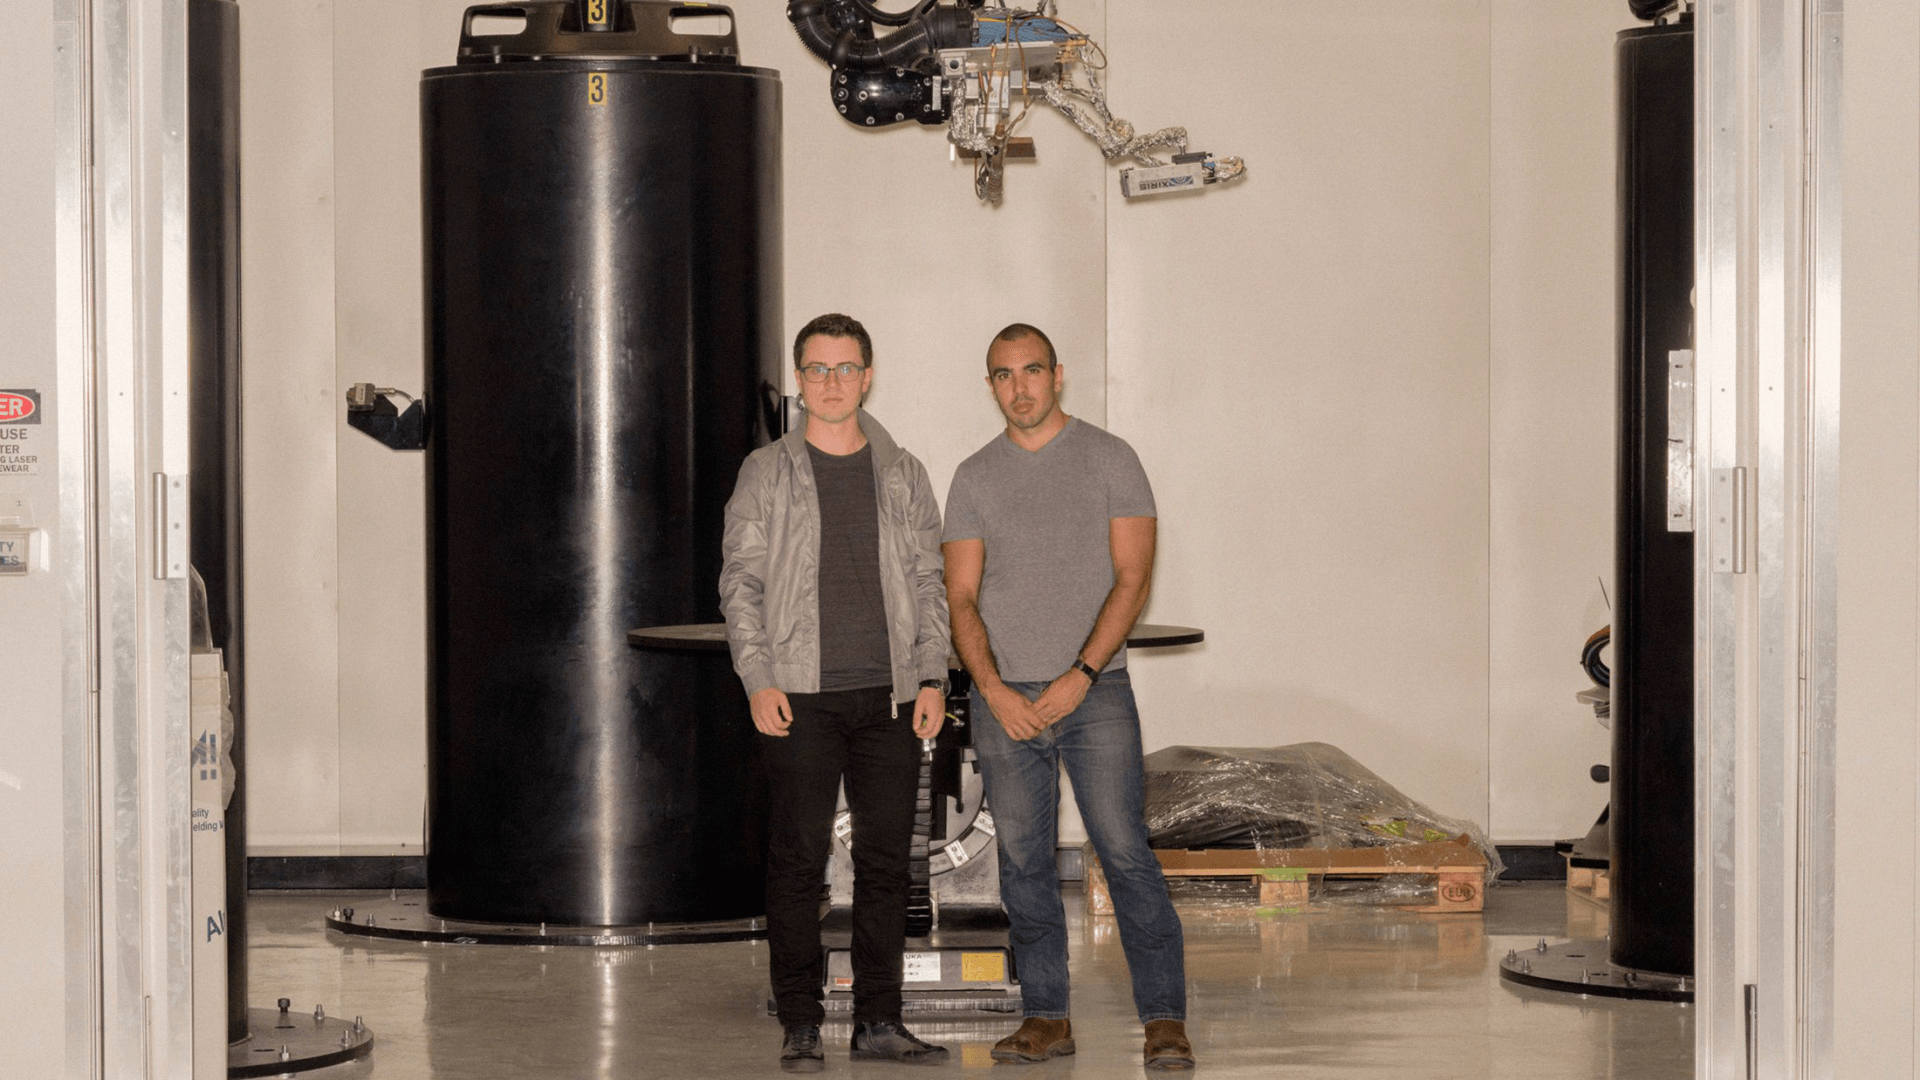 Meet the Aerospace Engineers Using Giant 3D Printers to Create Rockets | All3DP